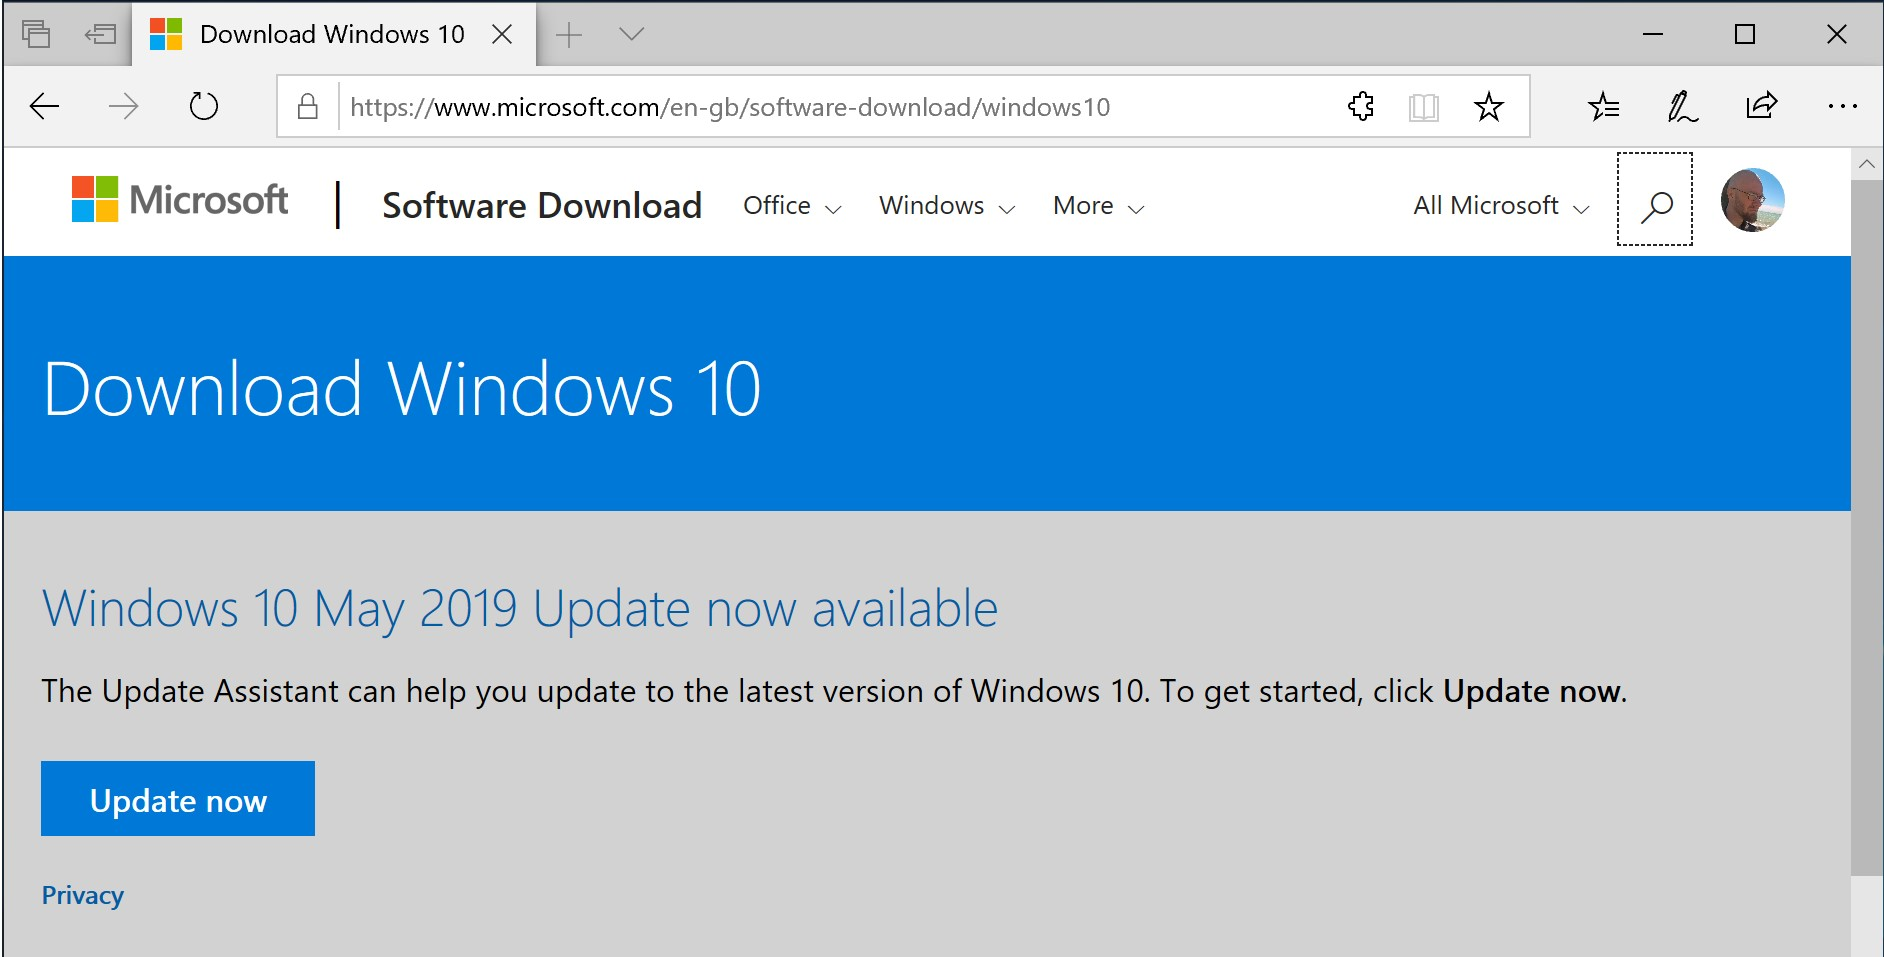 Windows 10 website showing the Update Assistant link